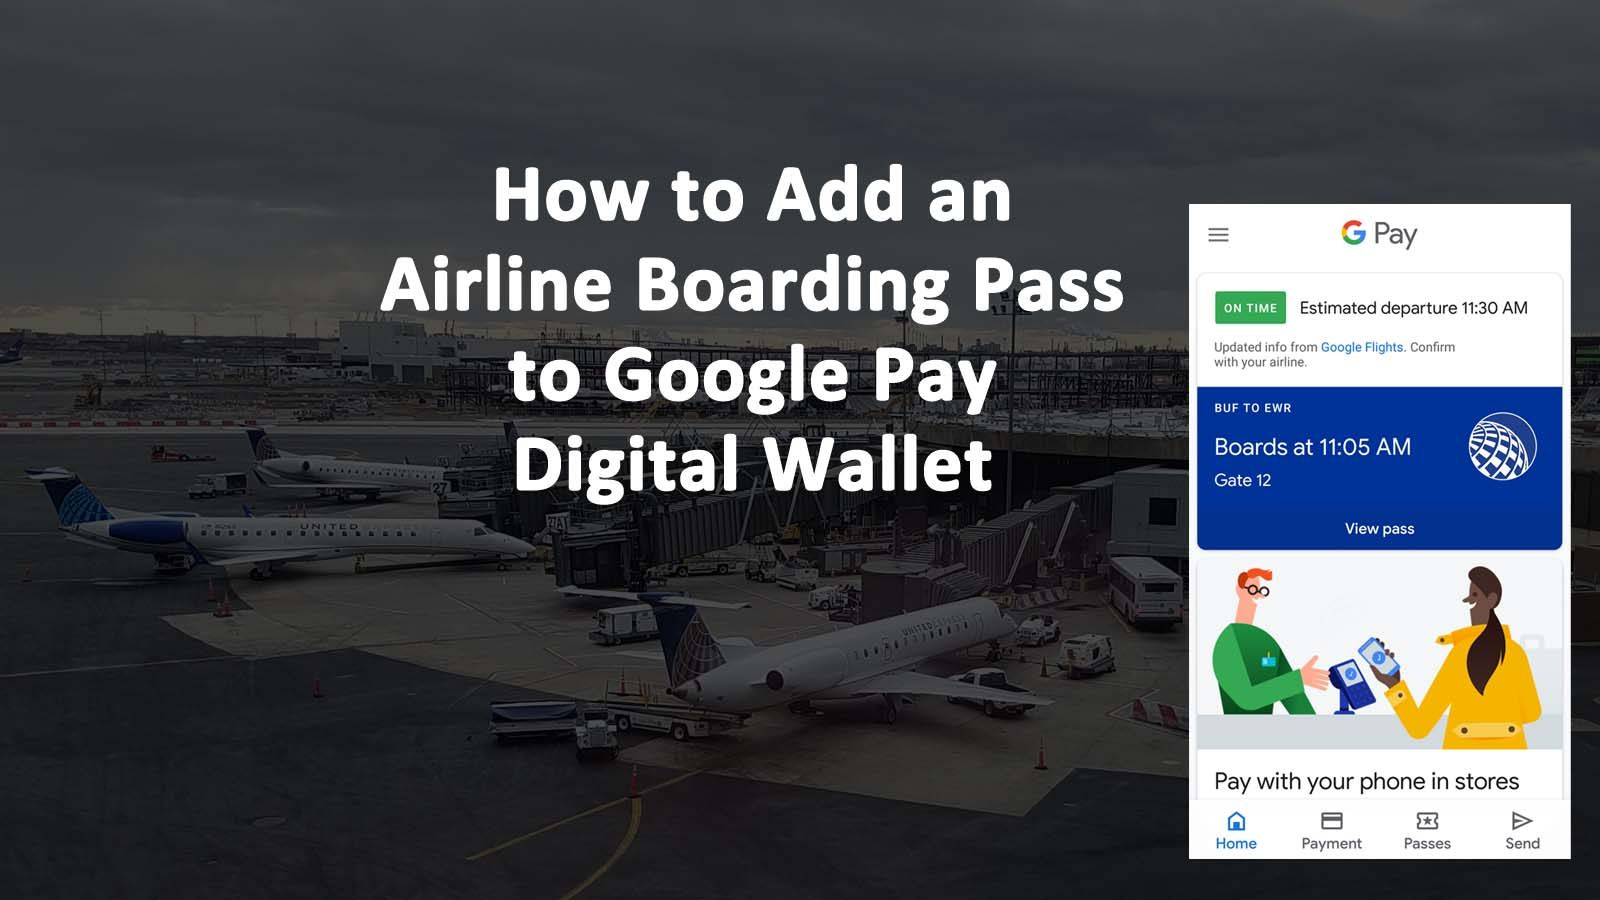 How To Add An Airline Boarding Pass To Google Pay Digital Wallet Askcybersecurity Com Digital Wallet Airline Space Travel